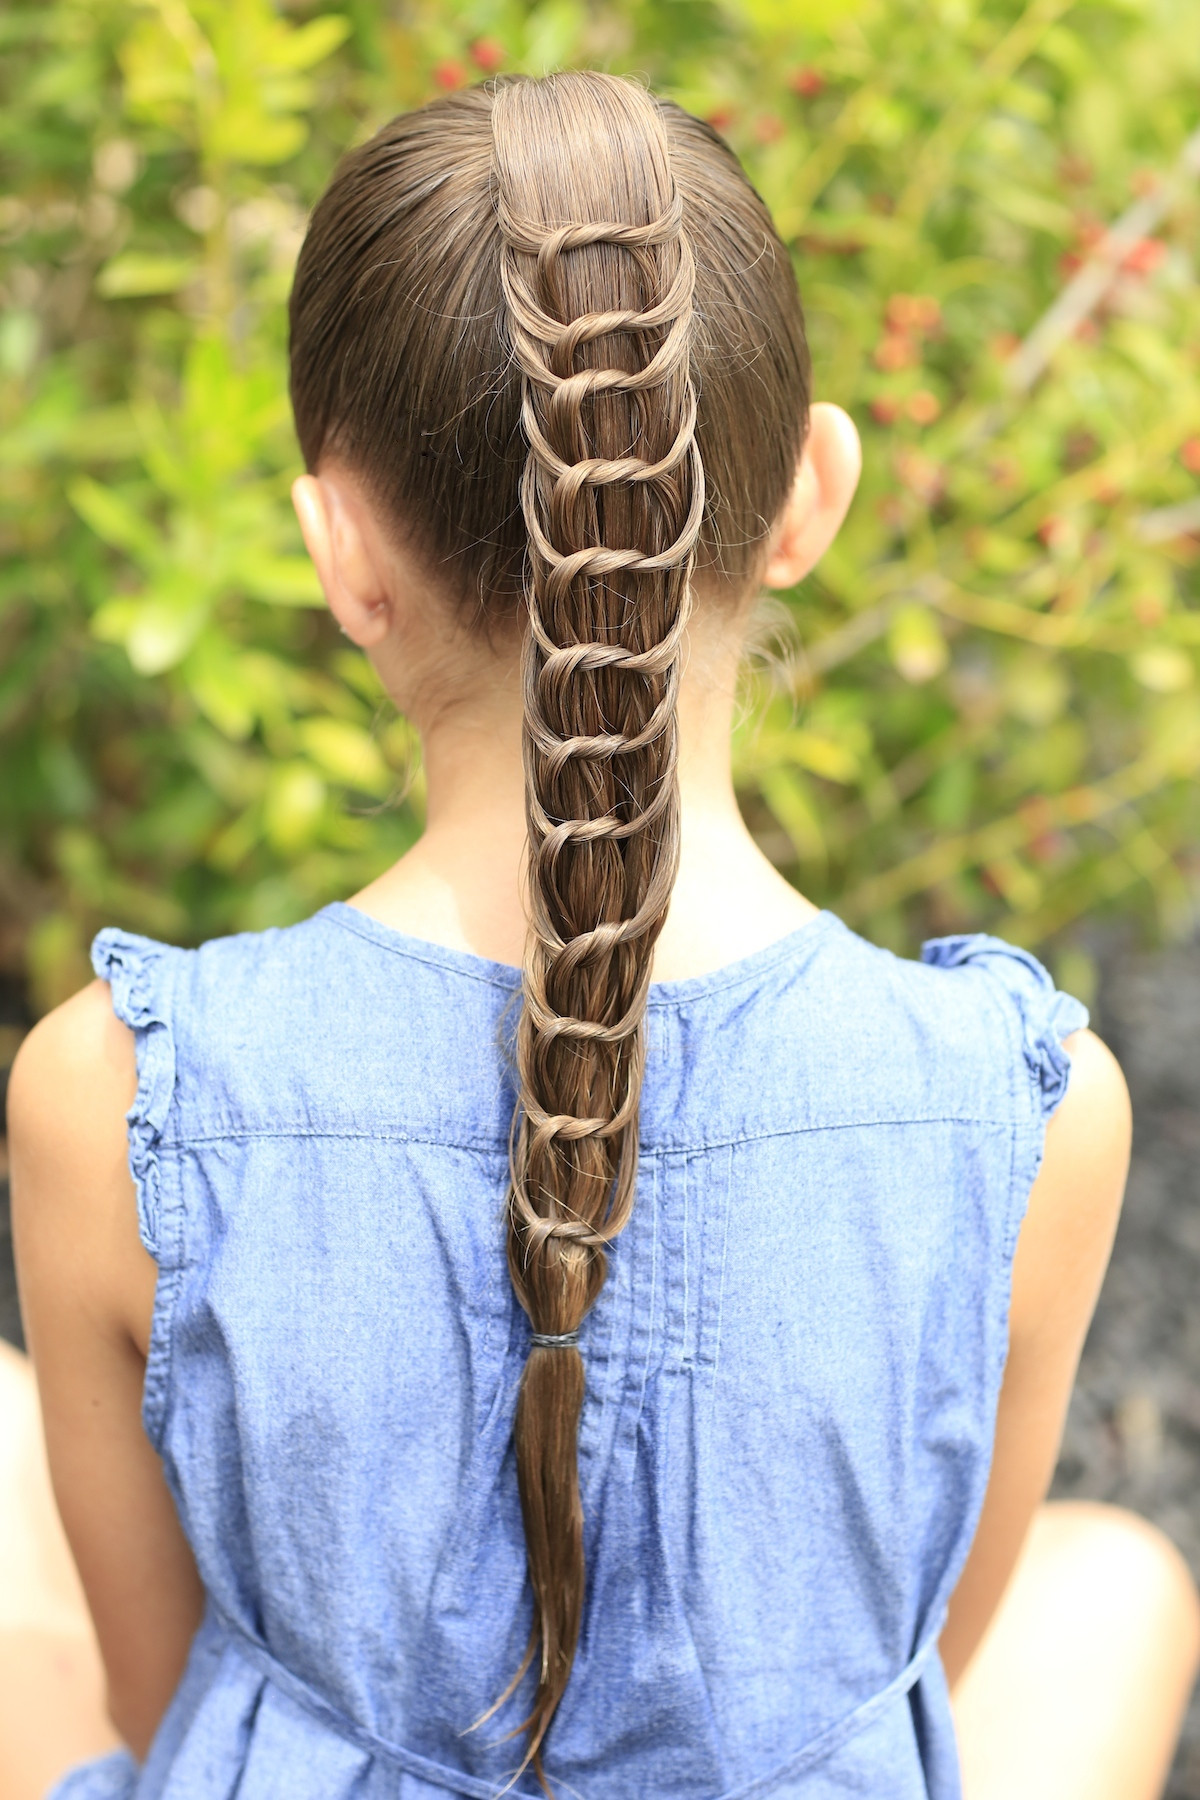 Best ideas about Pretty Girls Hairstyles . Save or Pin The Knotted Ponytail Hairstyles for Girls Now.